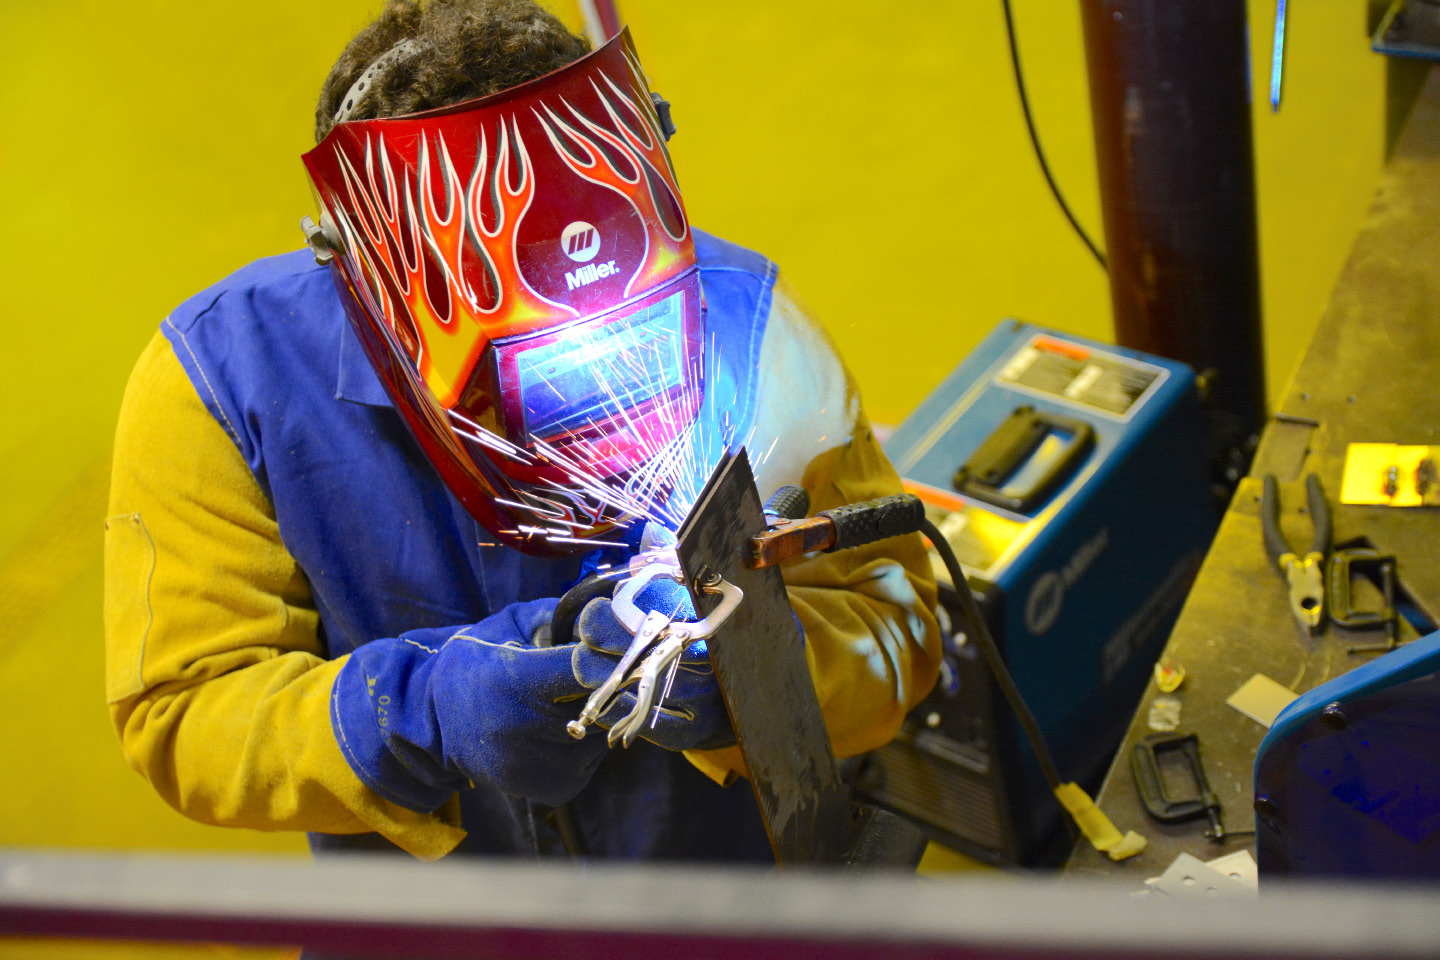 Avery Thomas, of Grasso Technical High School, welds metal during a Skills USA competition at Wilcox Technical High School on Friday, March 31, 2017. | Bryan Lipiner, Record-Journal